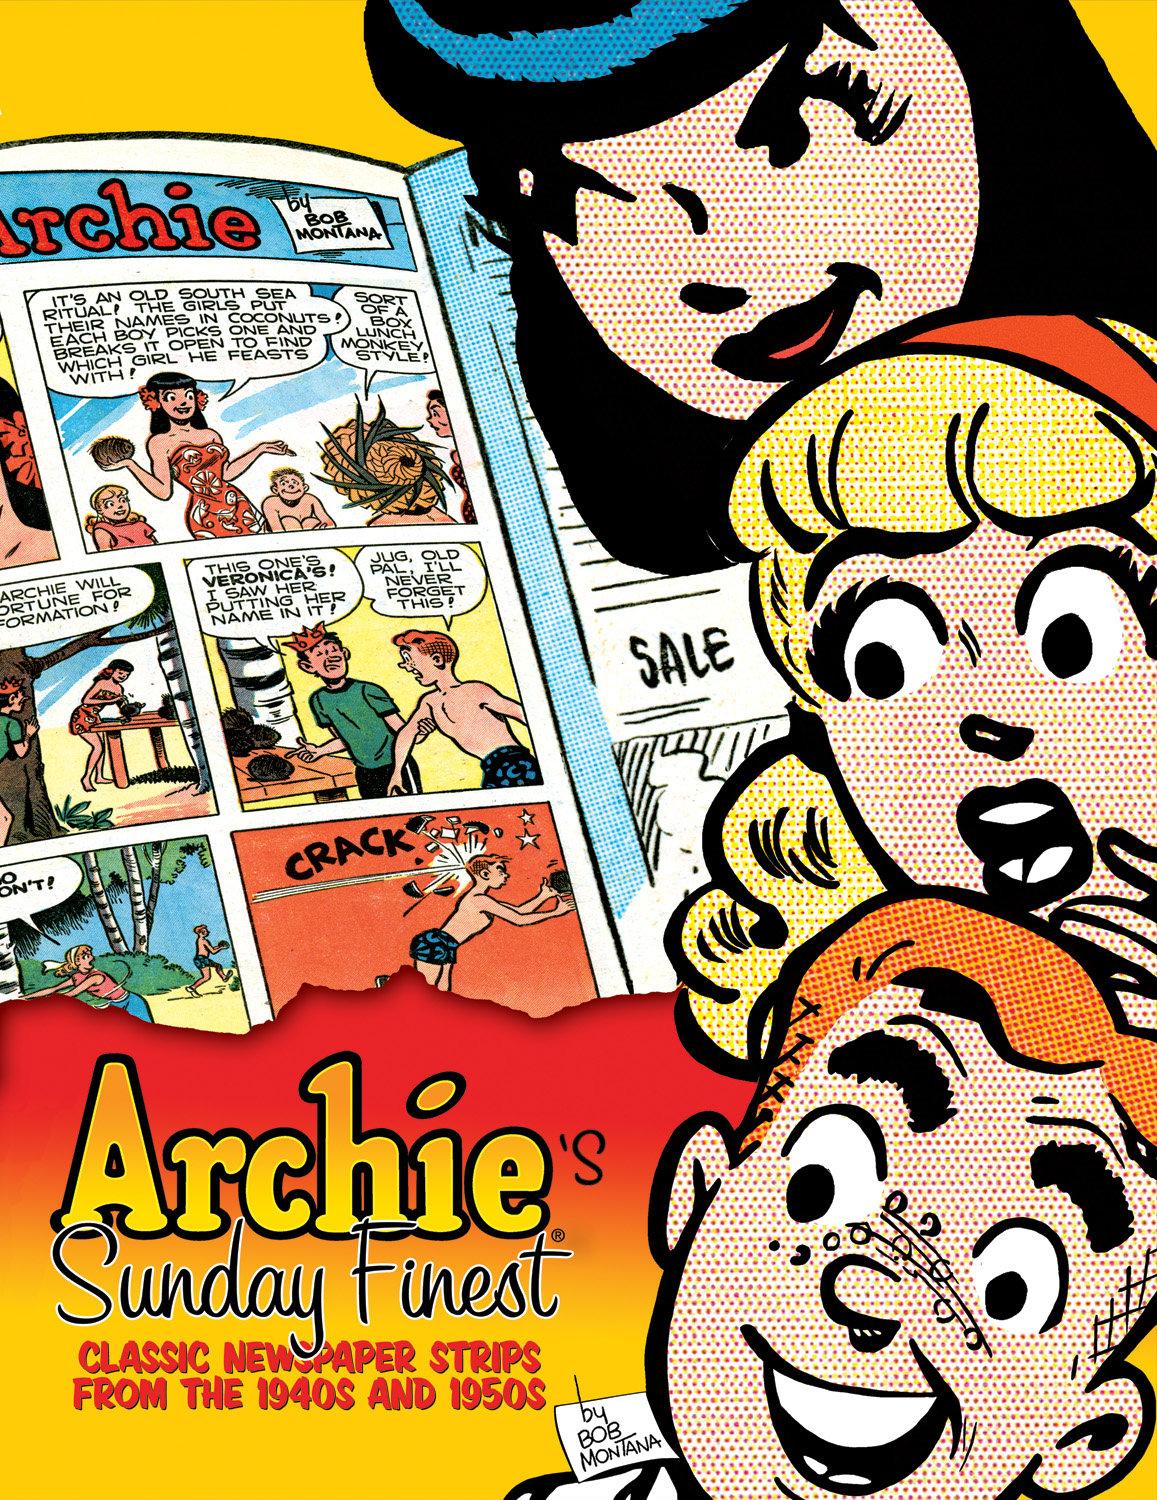 Archie Sunday's Finest